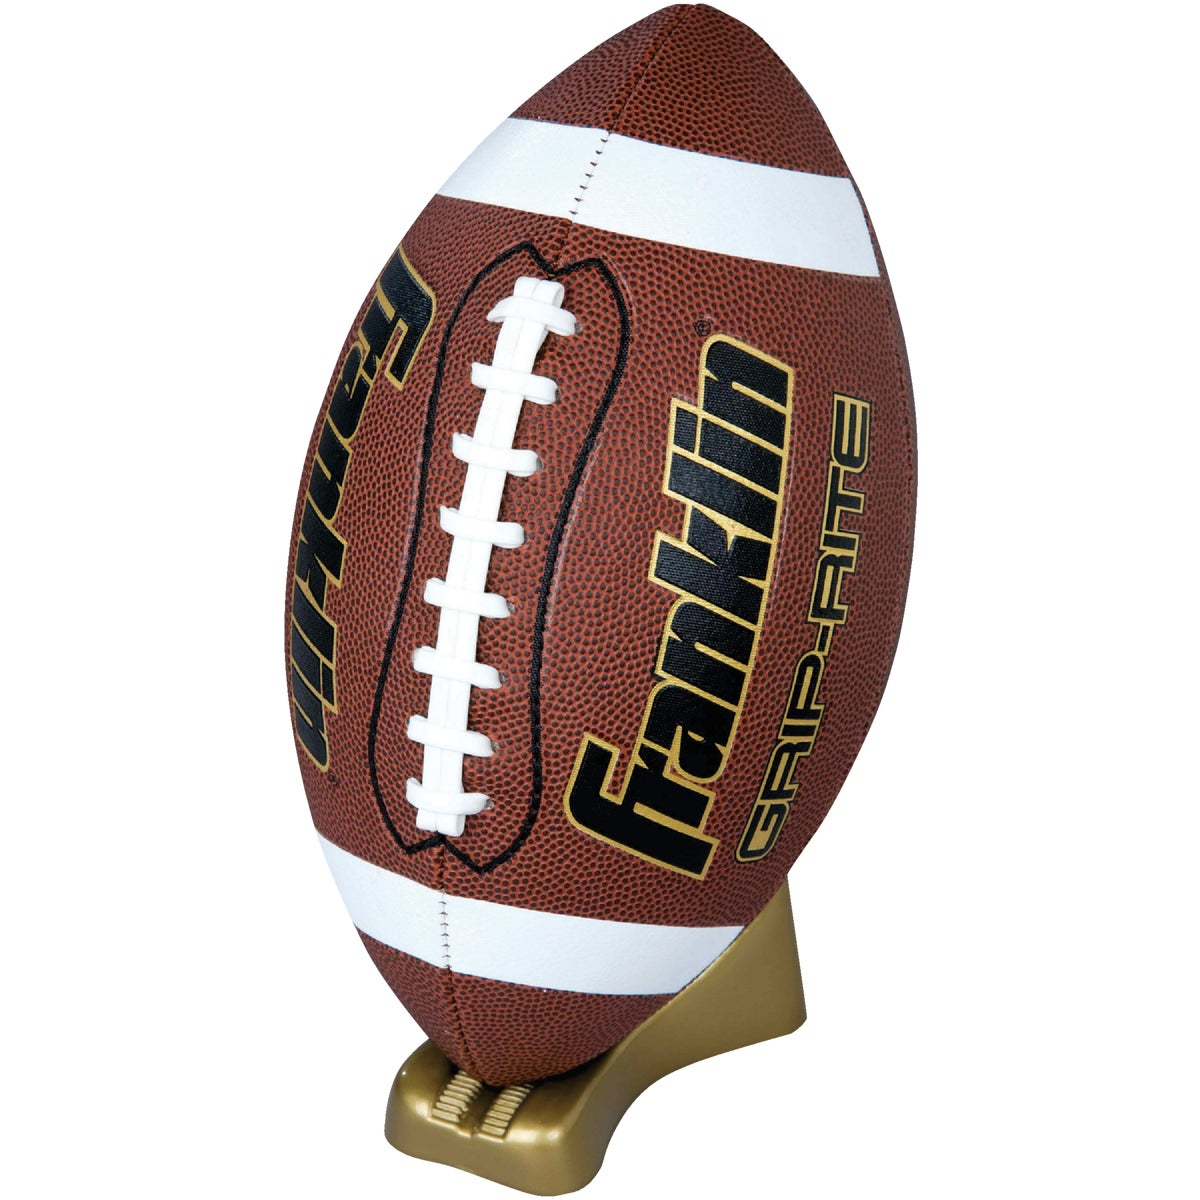 OFFICIAL FOOTBALL W/PUMP - 11325 by Franklin Sports